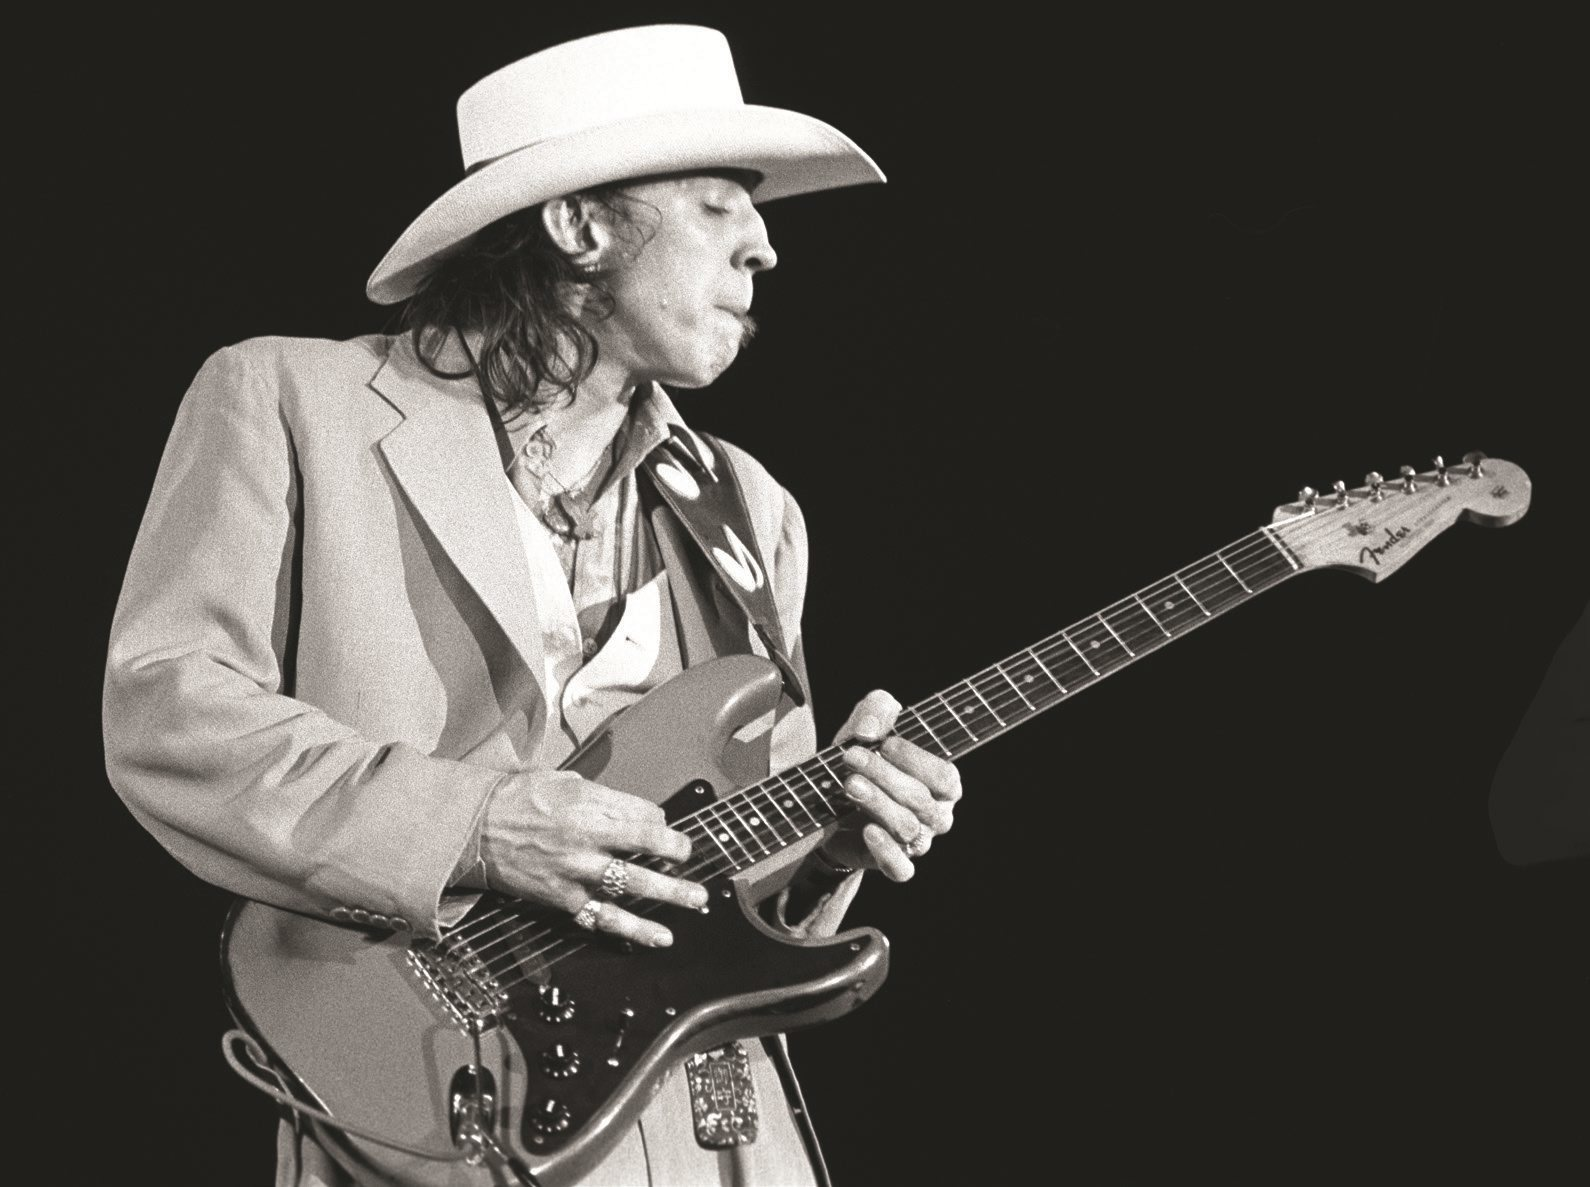 The hard rockin' life and death of Stevie Ray Vaughn